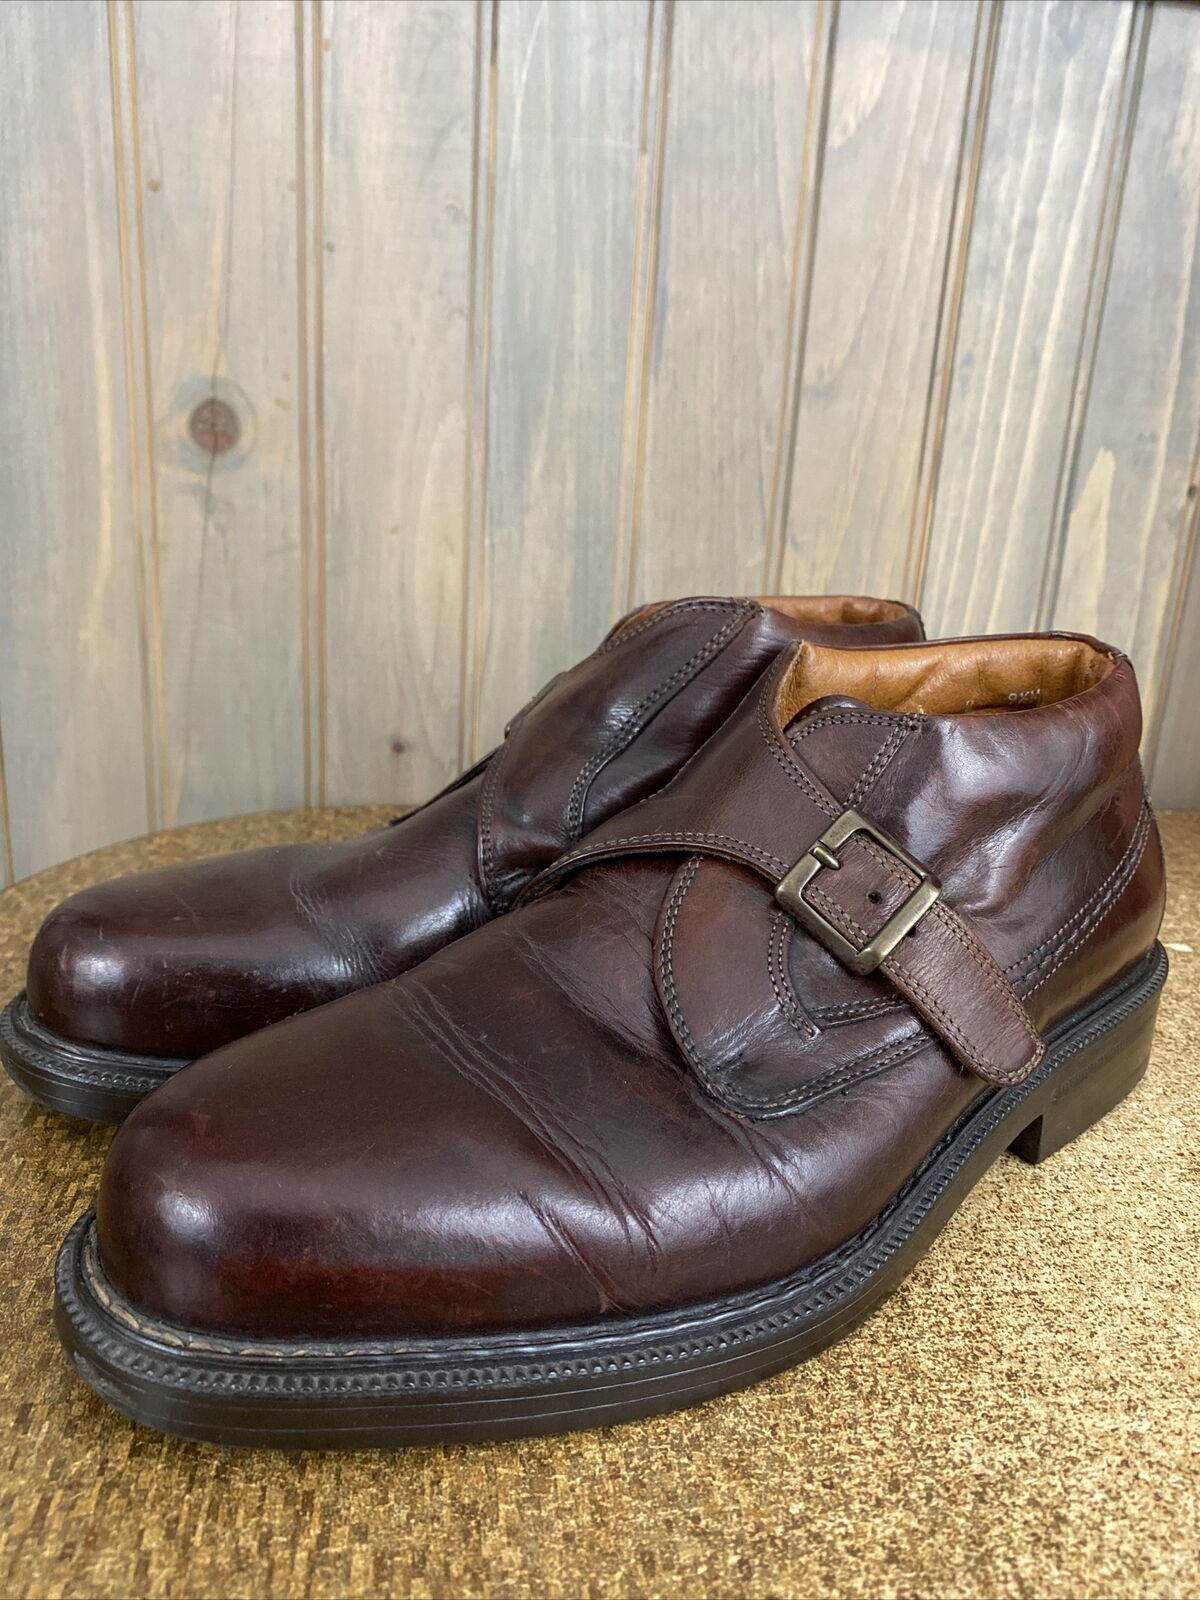 Vintage Johnston & Murphy Aristocraft Monk Strap Loafer Buckle Boots 9.5 M Italy